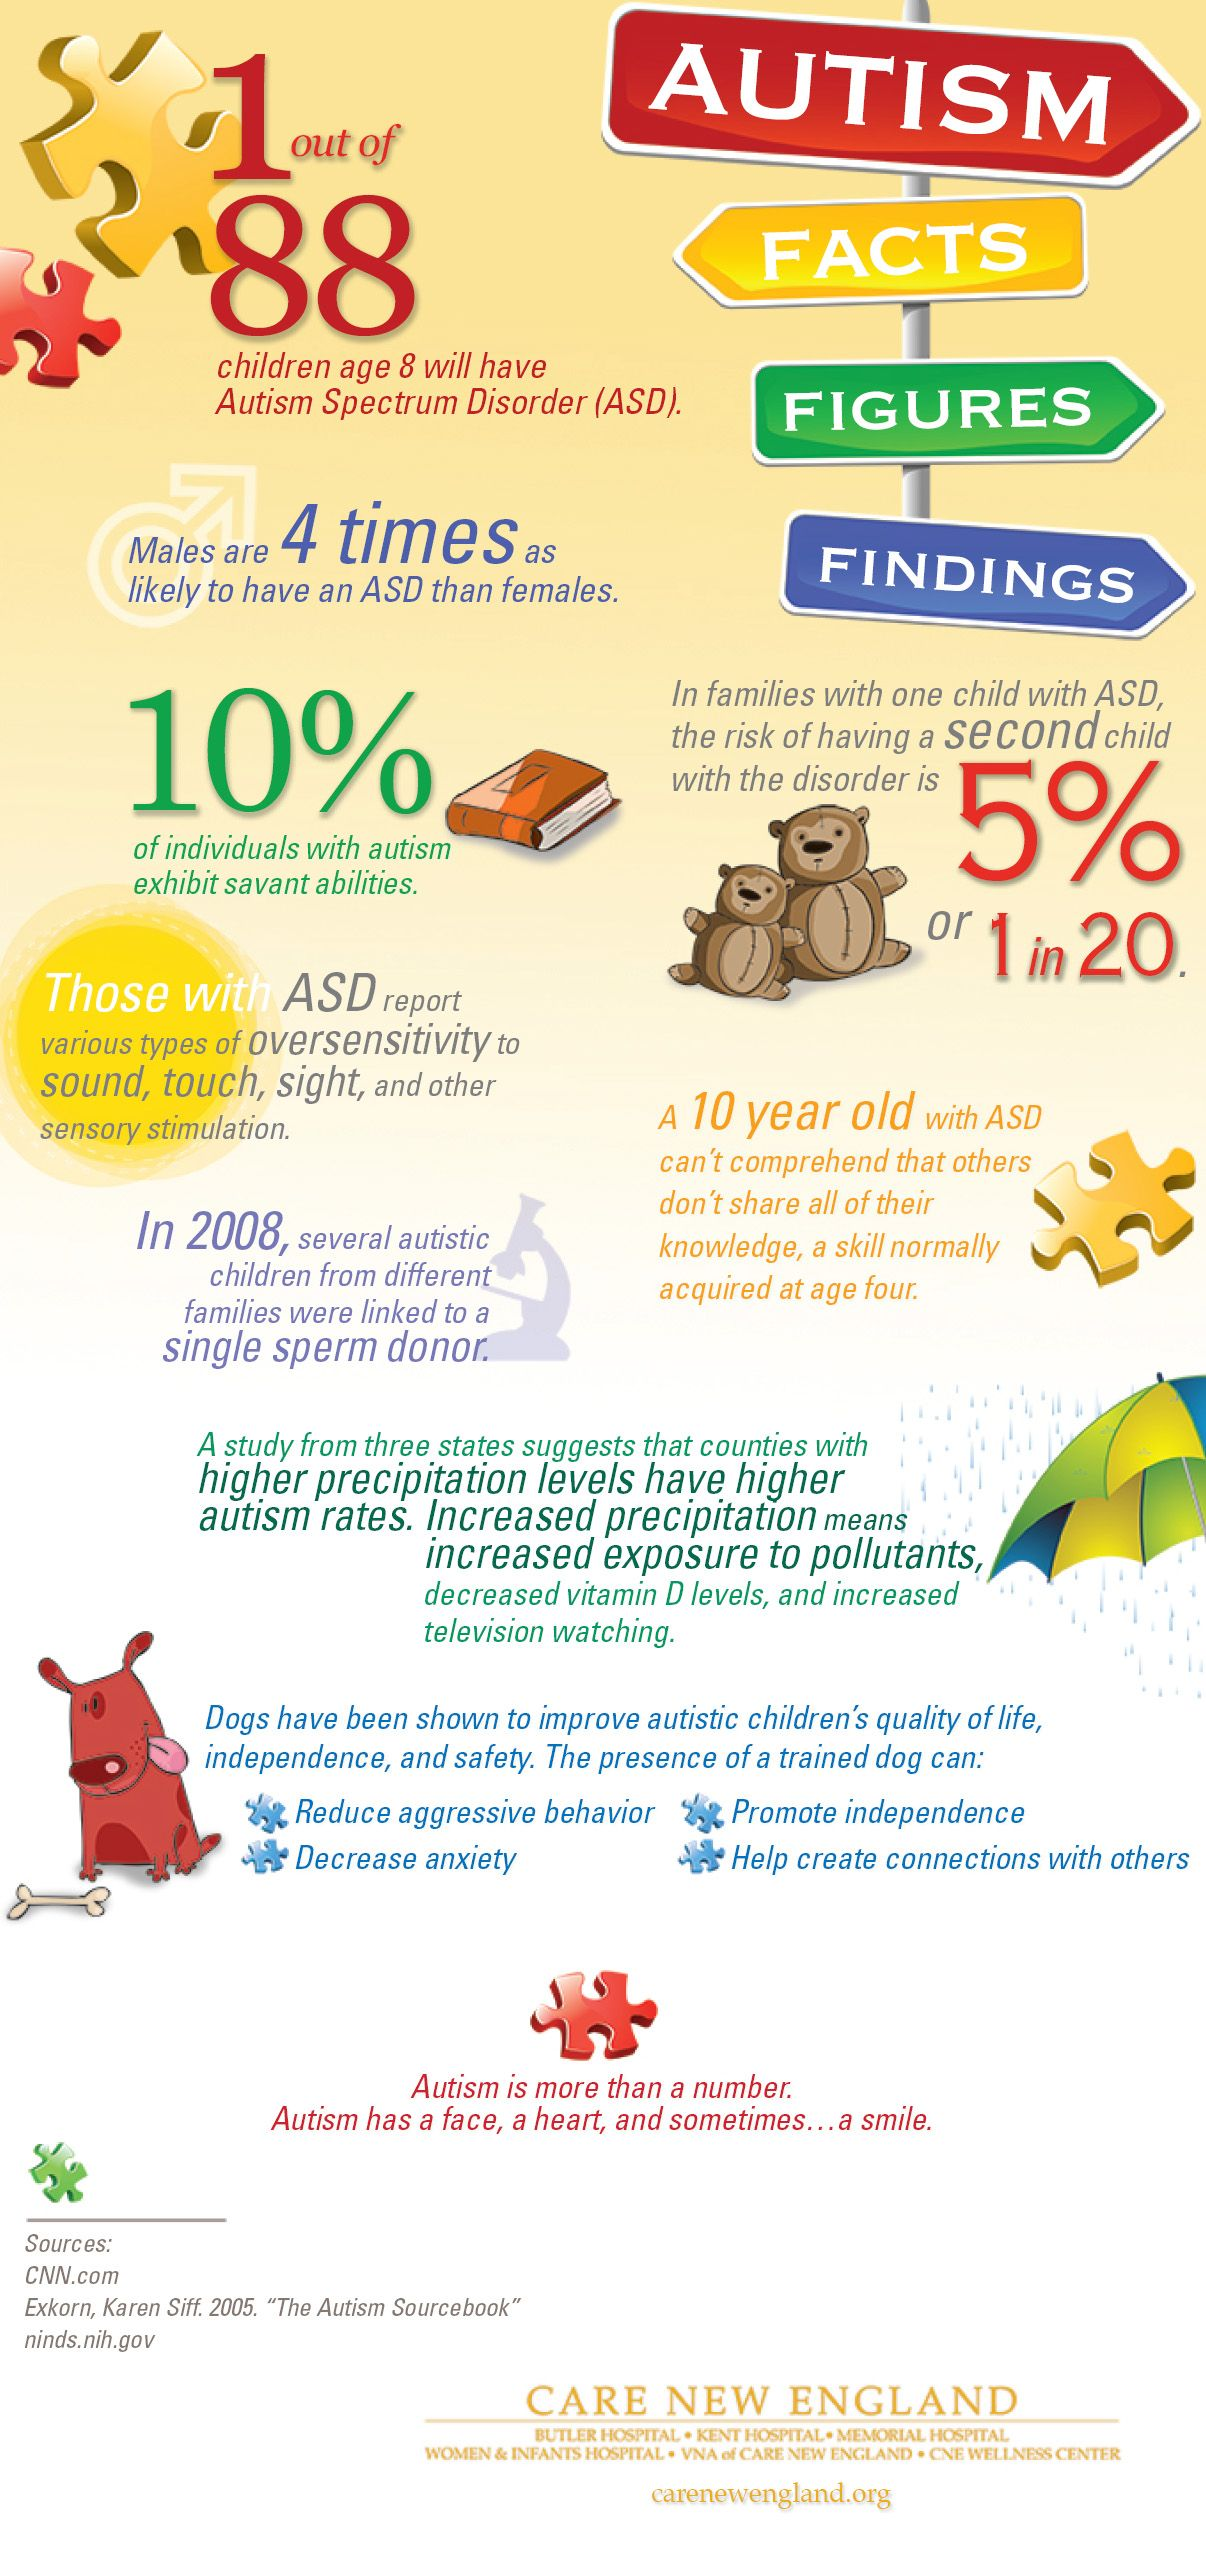 1 out of 88 kids will have Autism Spectrum Disorder ASD This